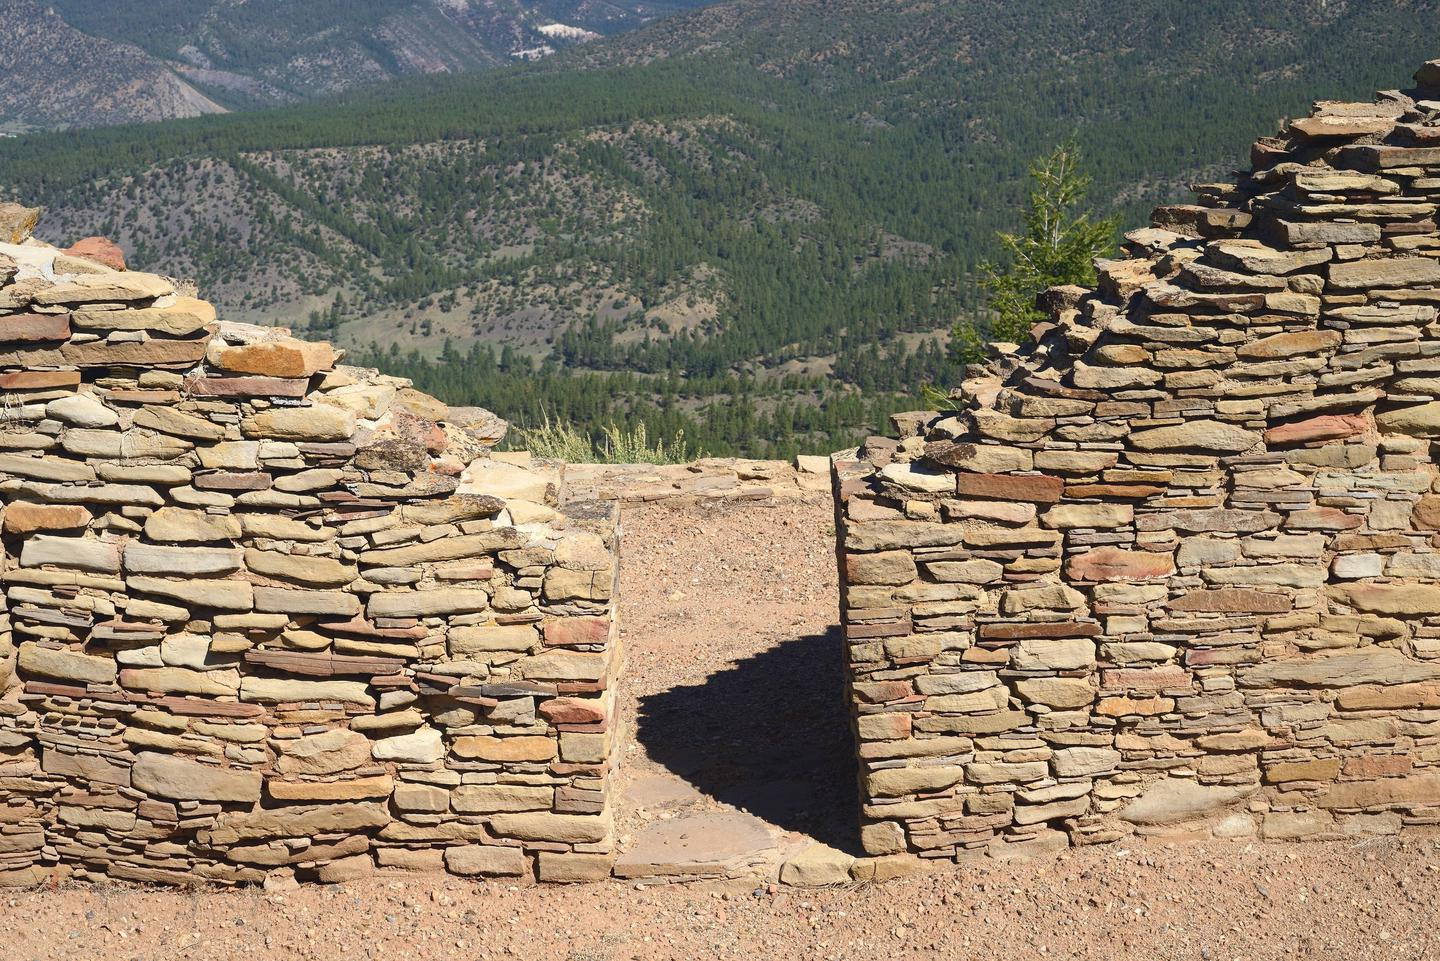 Chimney Rock covers seven square miles and preserves 200 ancient homes and ceremonial buildings, some of which have been excavated for viewing and explorationTrained volunteer interpretive guides will bring this beautiful site to life so you can visualize what it might have been like to live here 1,000 years ago.